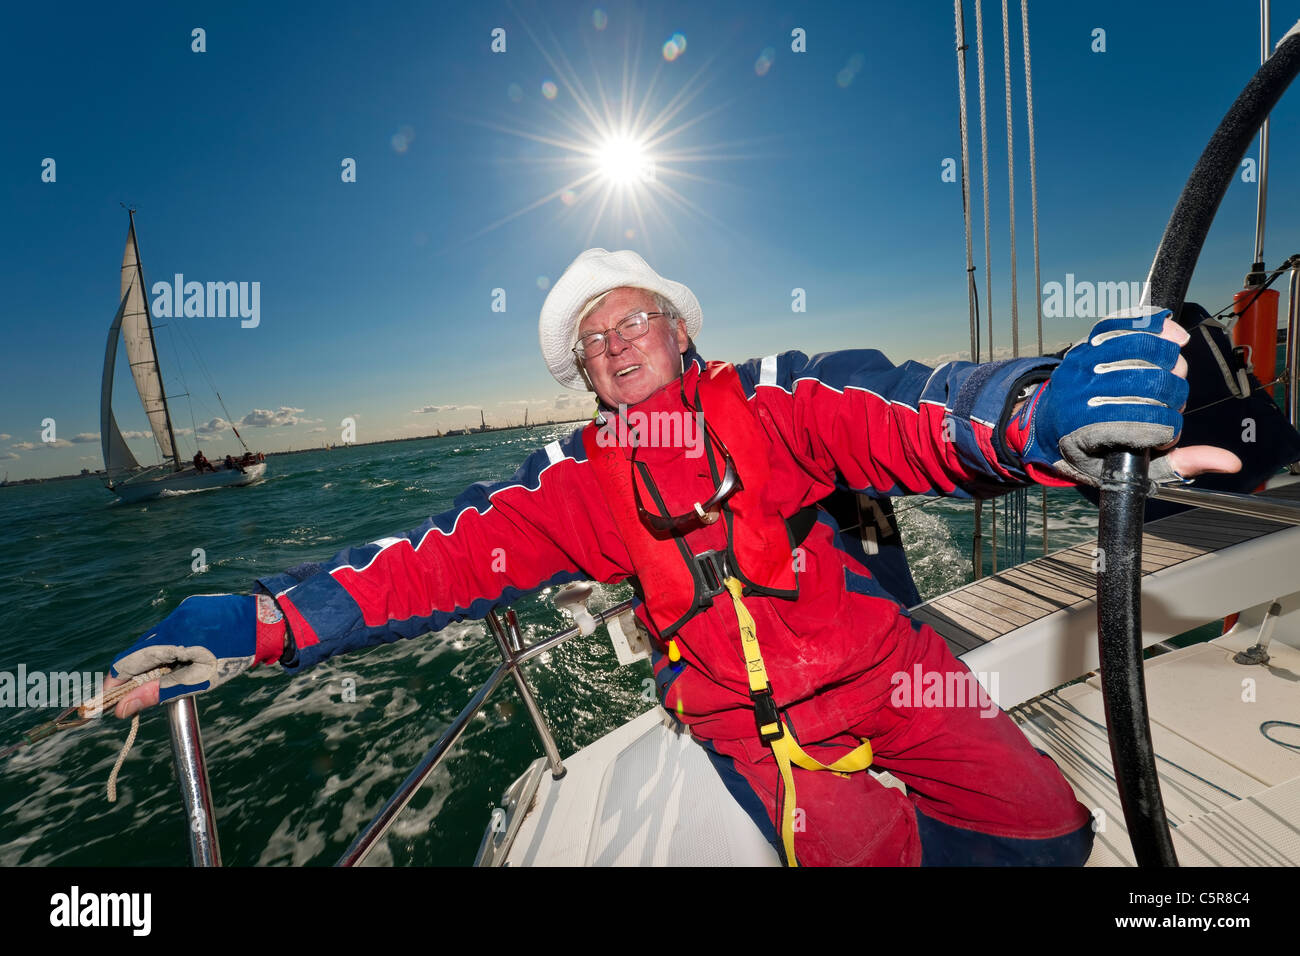 The captain at the wheel of an Ocean going yacht. - Stock Image